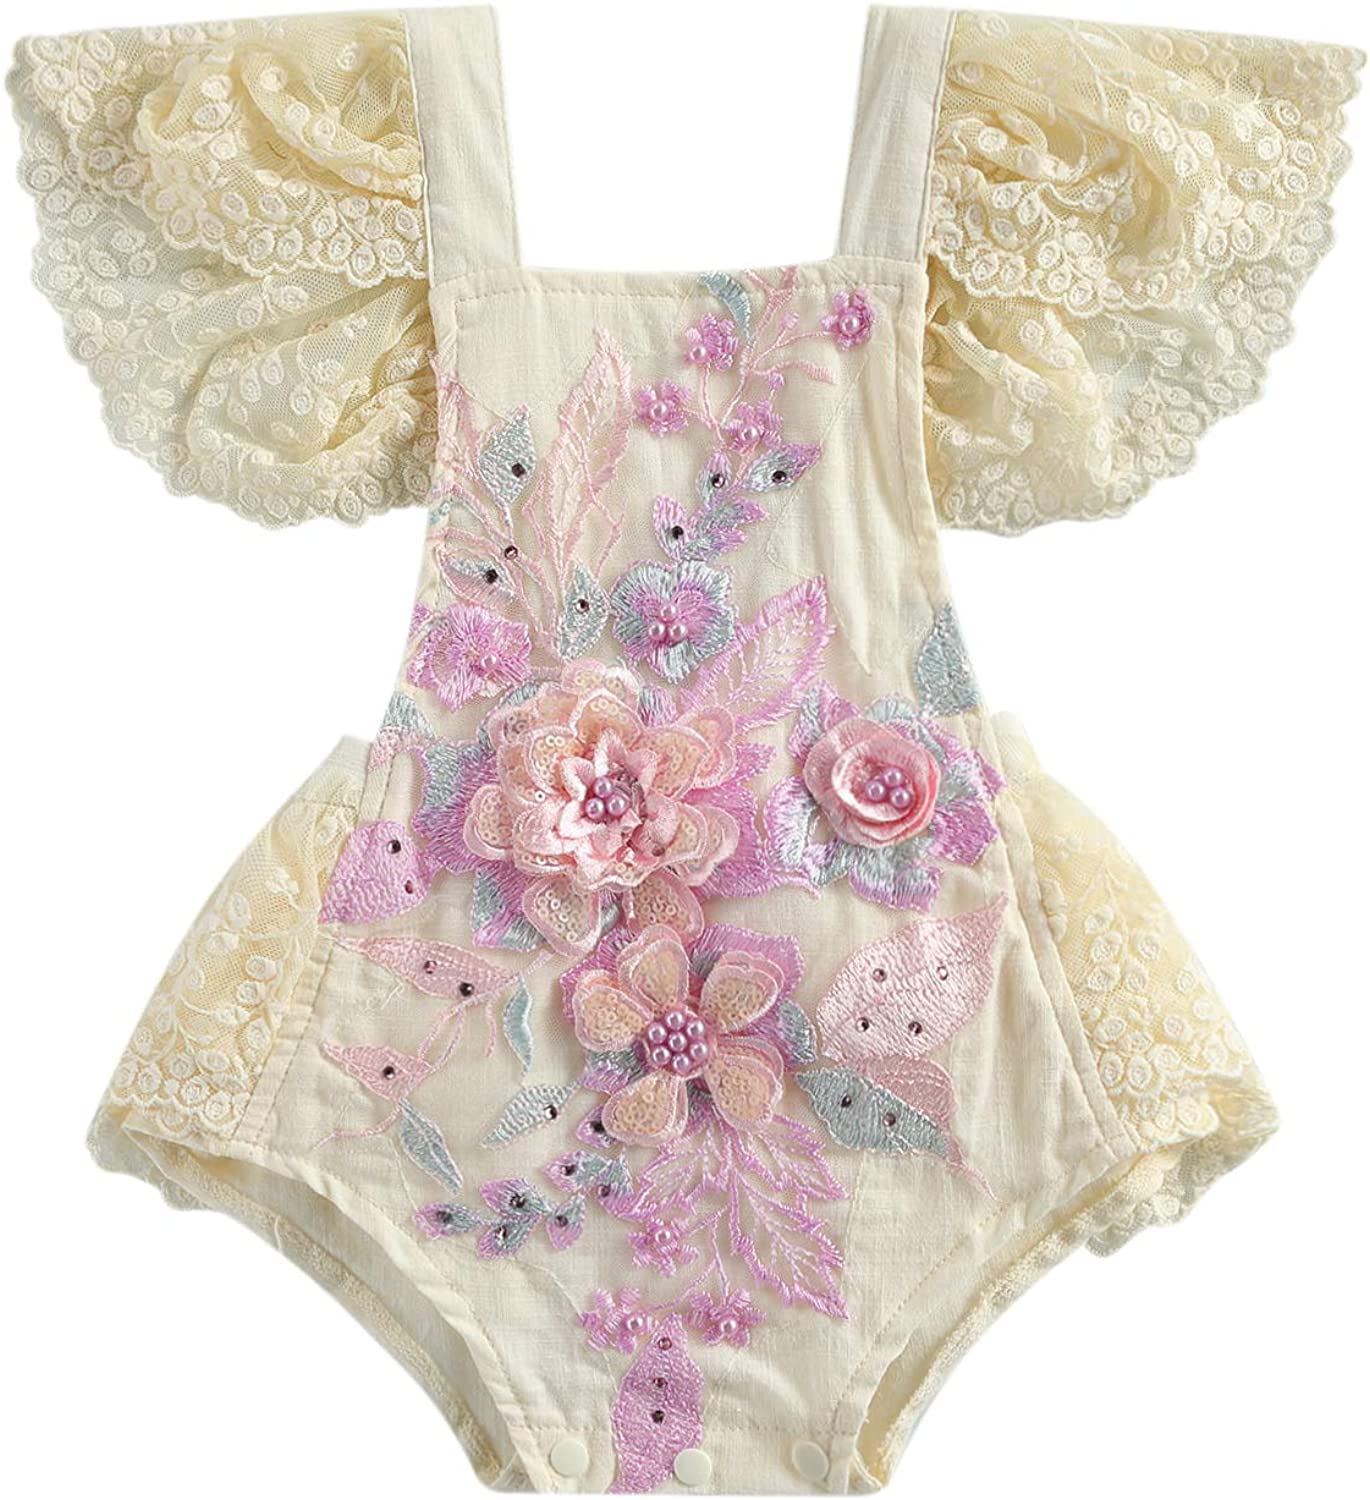 YOKJZJD Newborn Infant shipfree Baby Girl Long Romper Floral Lace Sleeve Manufacturer regenerated product